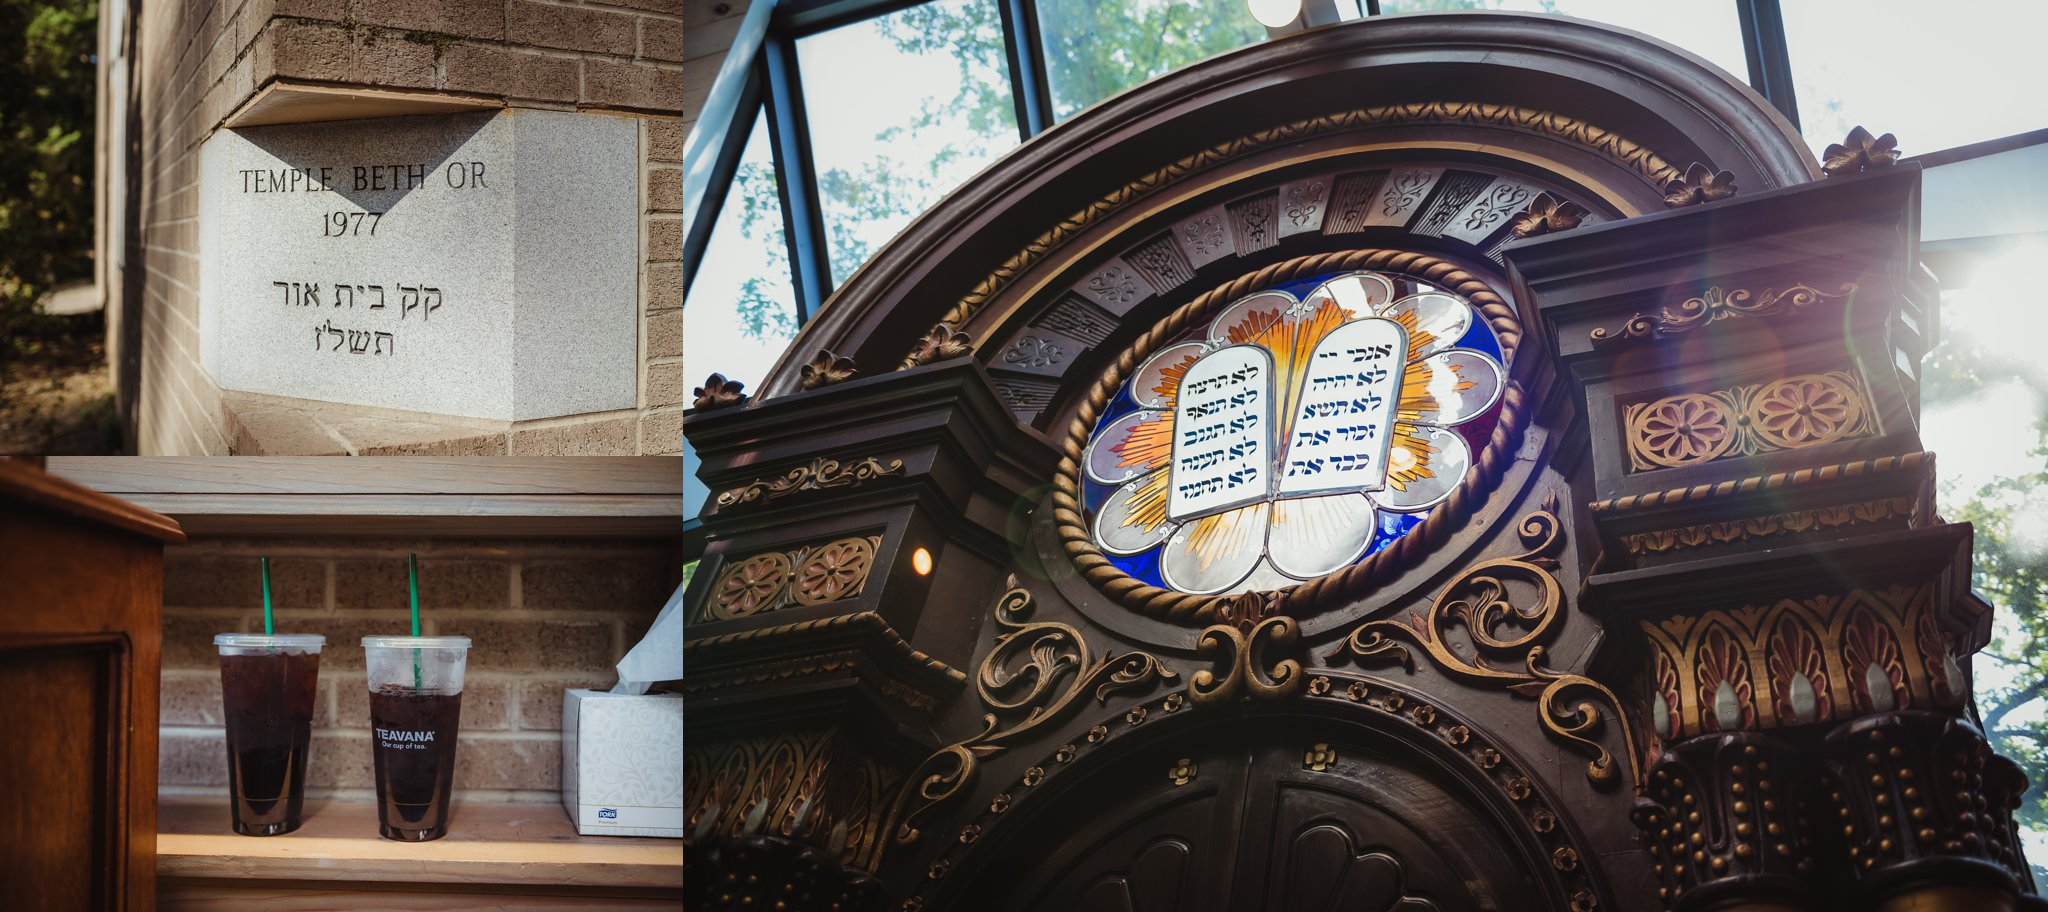 Images of Temple Beth Or in Raleigh, North Carolina taken by Rose Trail Images.